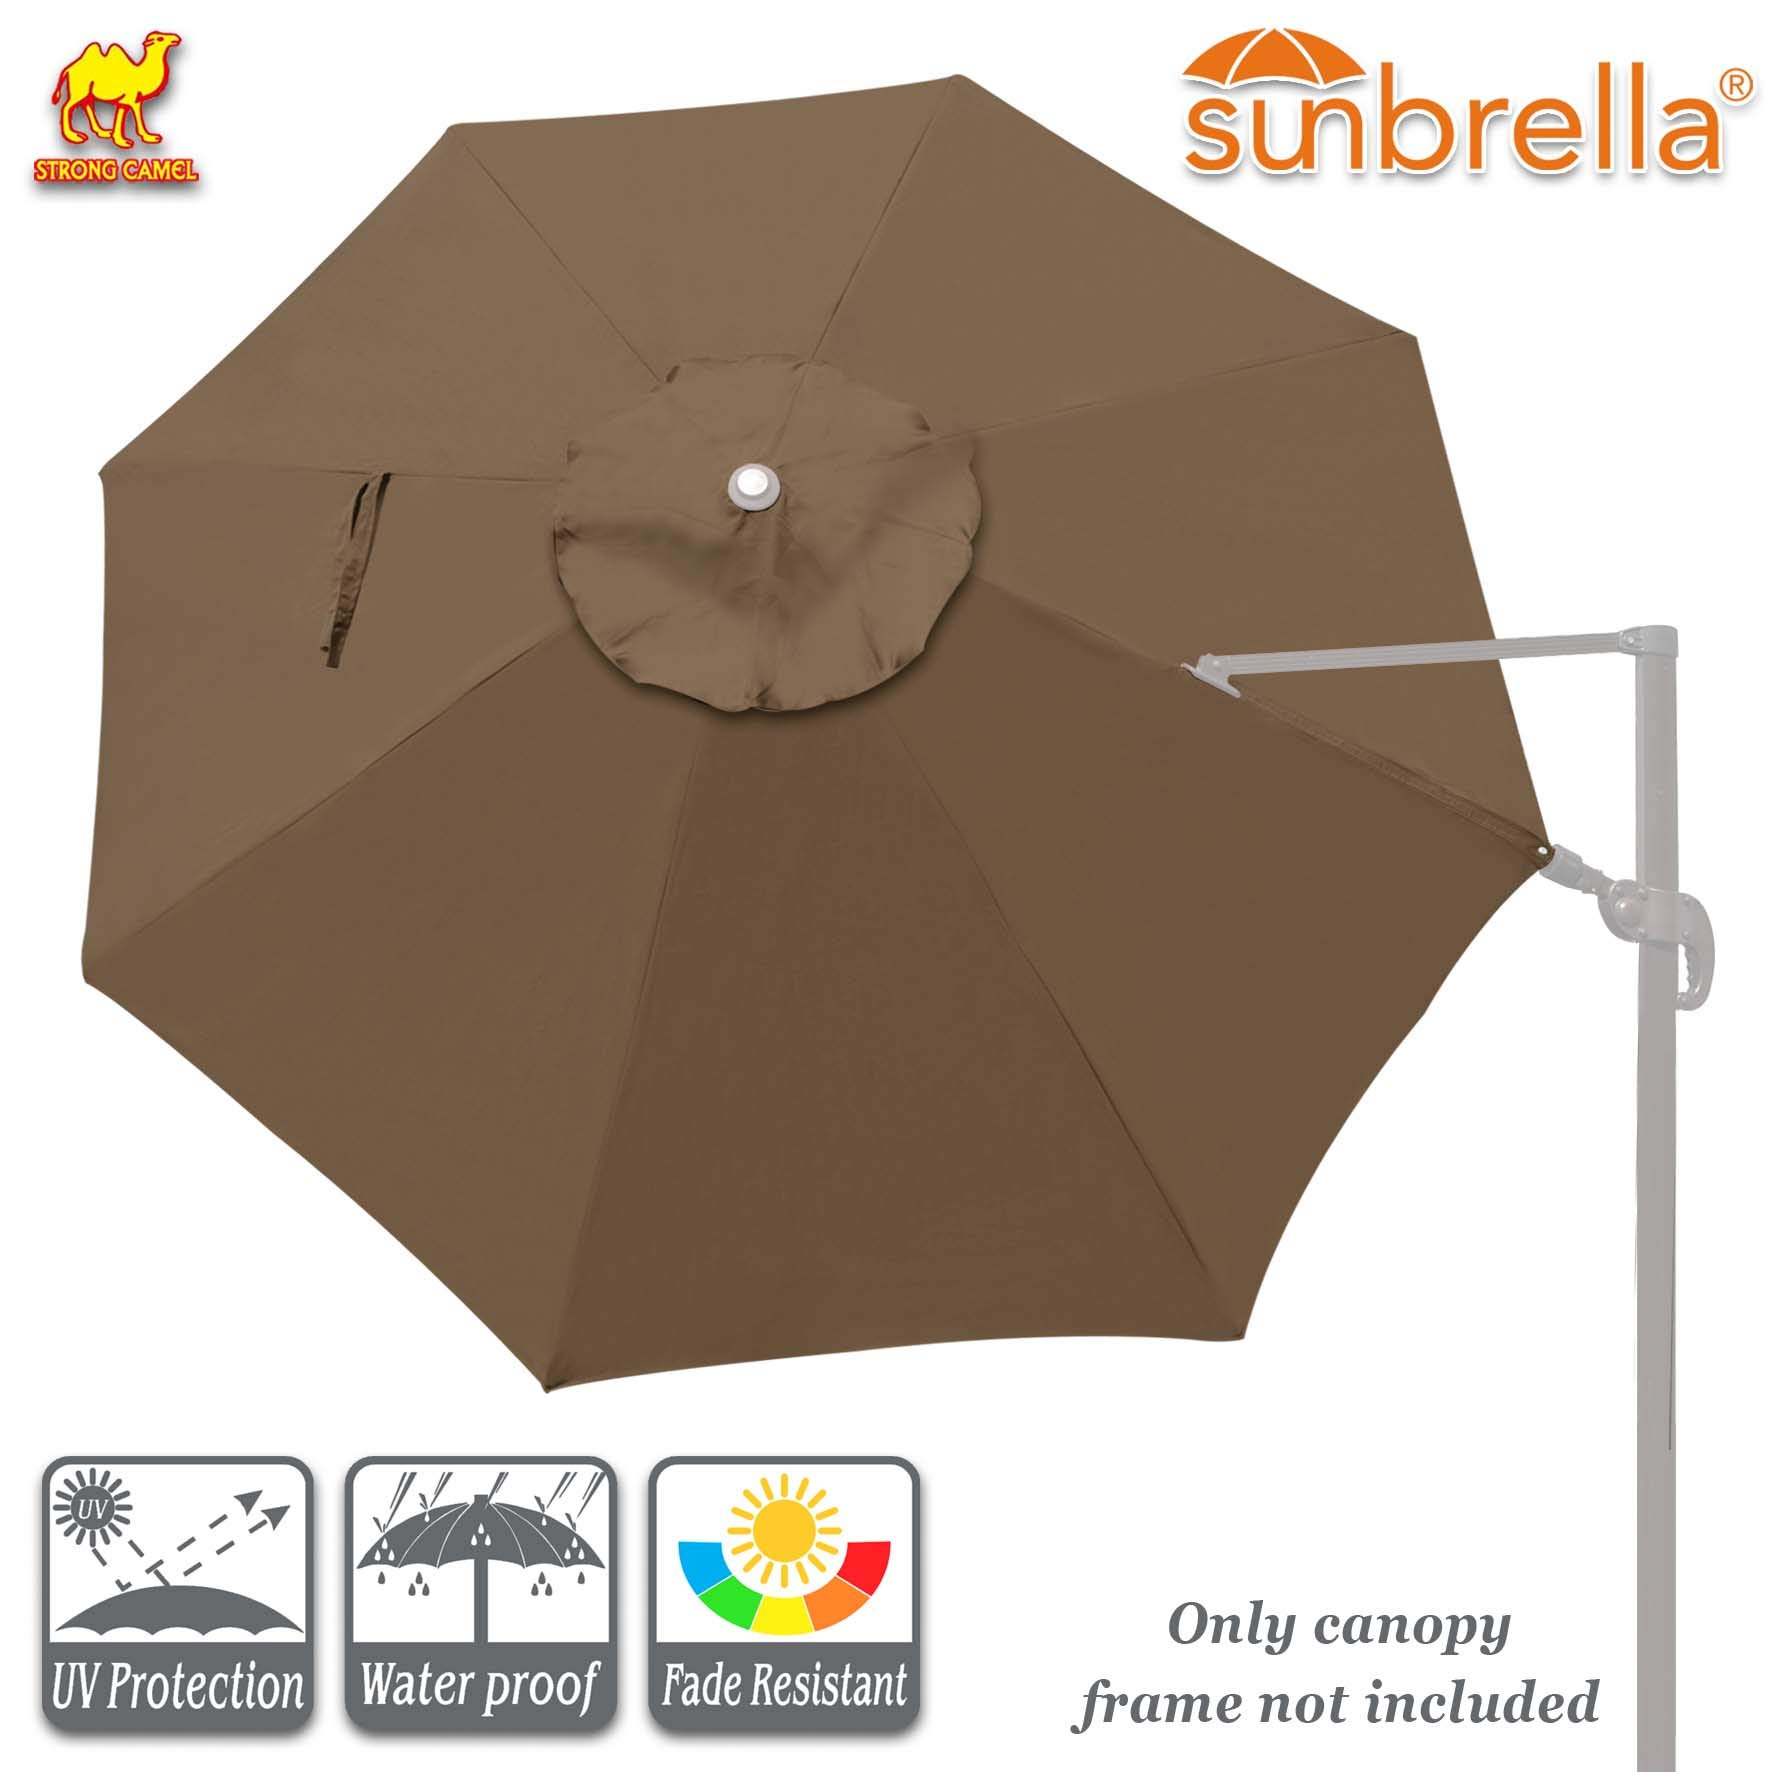 Strong Camel Universal Canopy Replacement Cover for 11.5' FT 8 Ribs Cantilever Patio Umbrella (Canopy ONLY) (Cocoa)